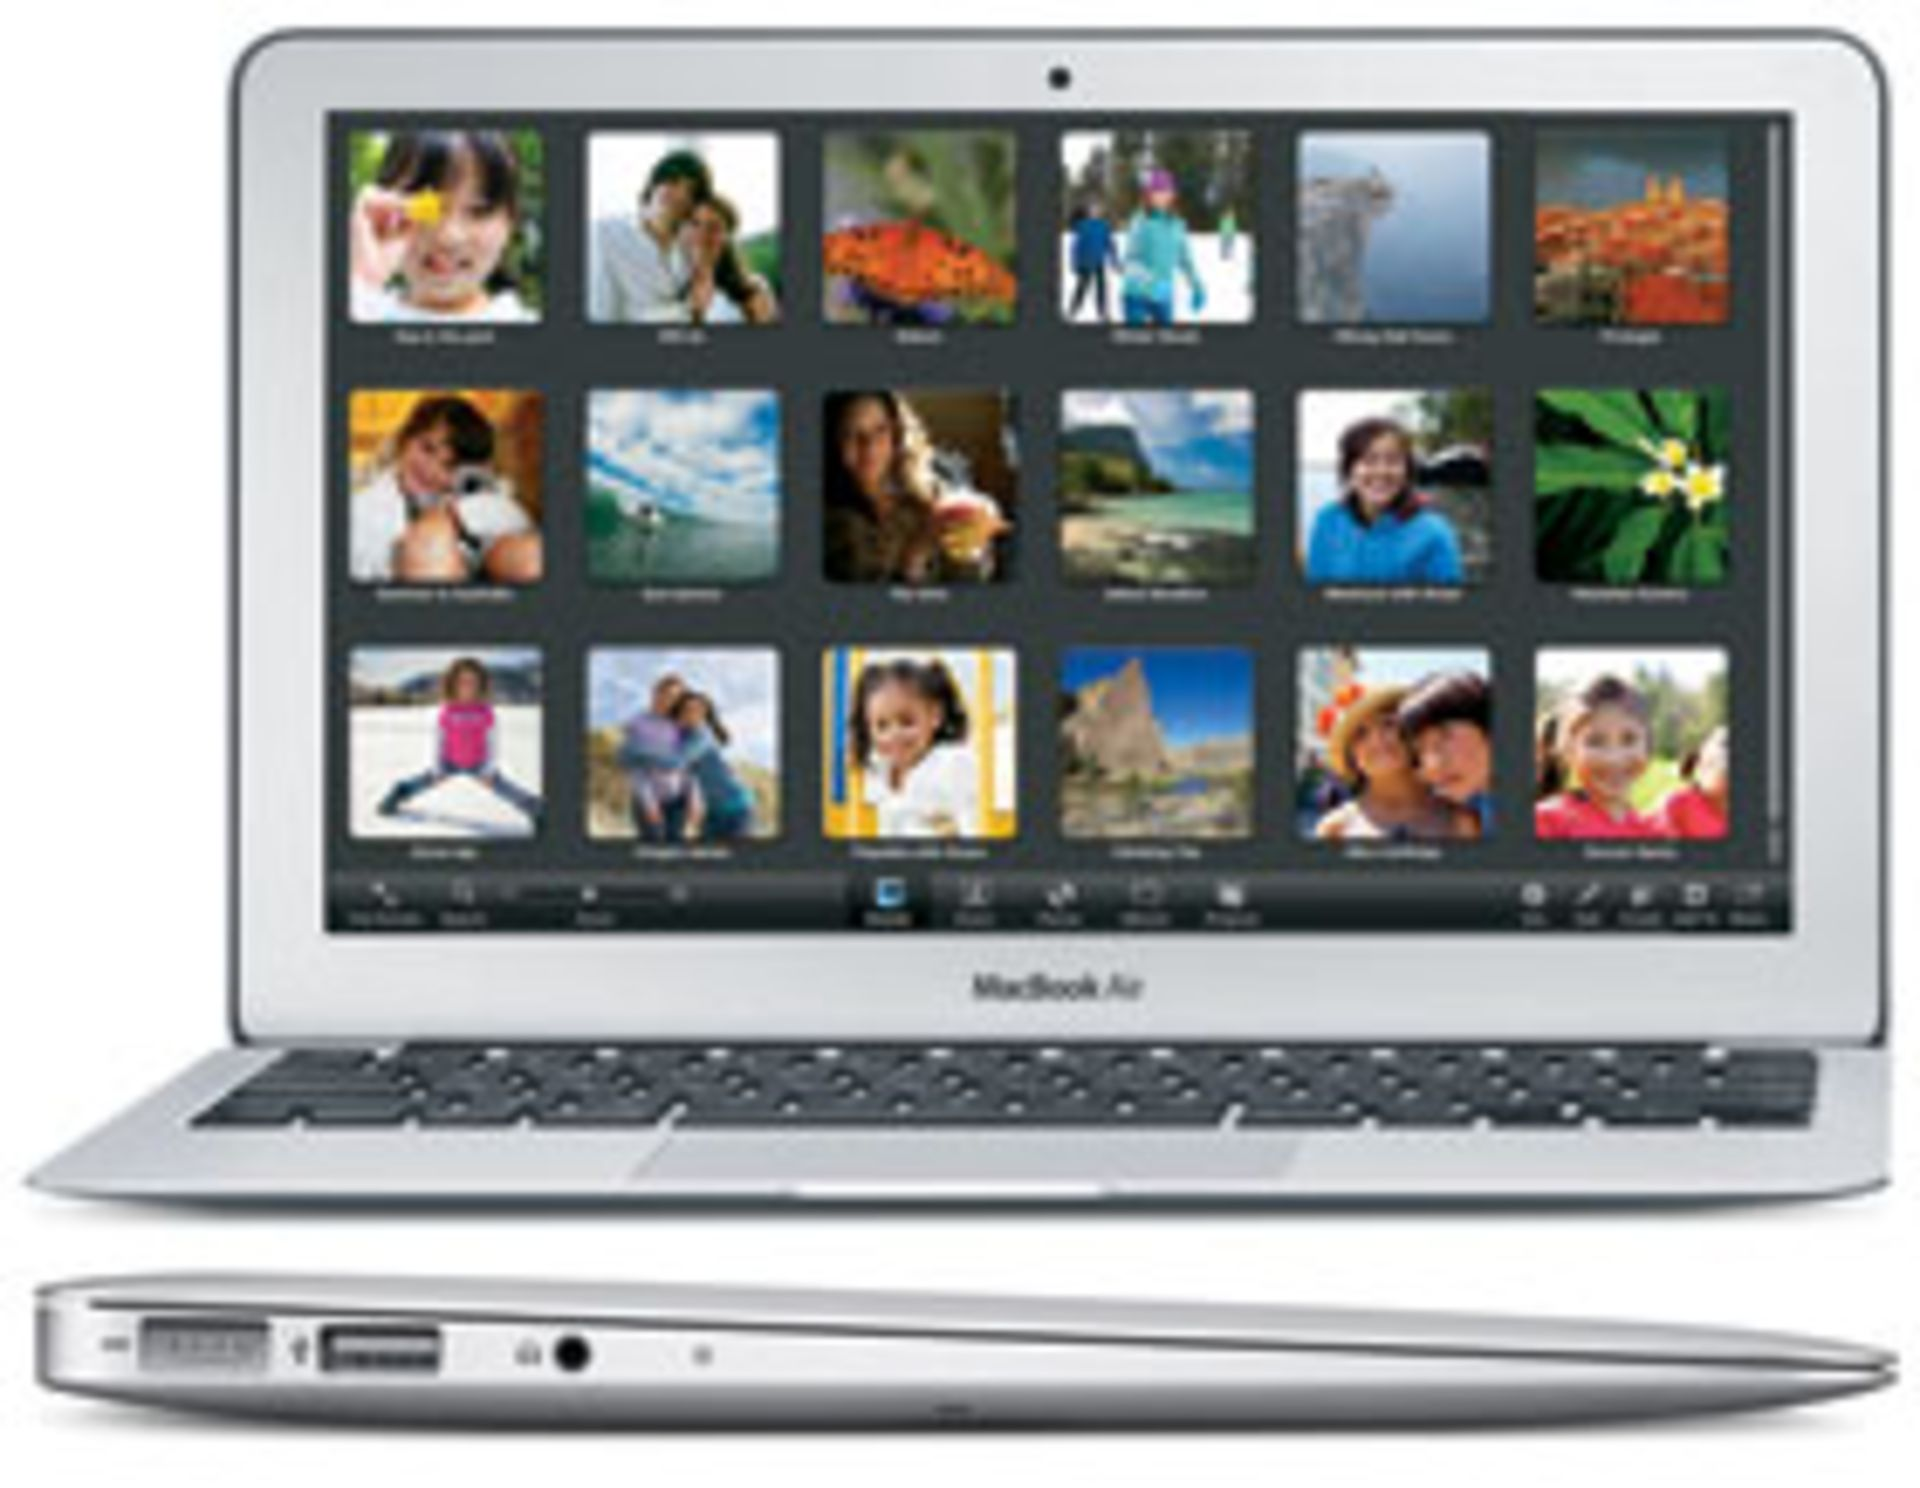 Lot 60051 - V Grade B Macbook Air 11.6 Inch Core 2 Duo - 64GB SSD - A1370 - Available Approx 7 Working Days